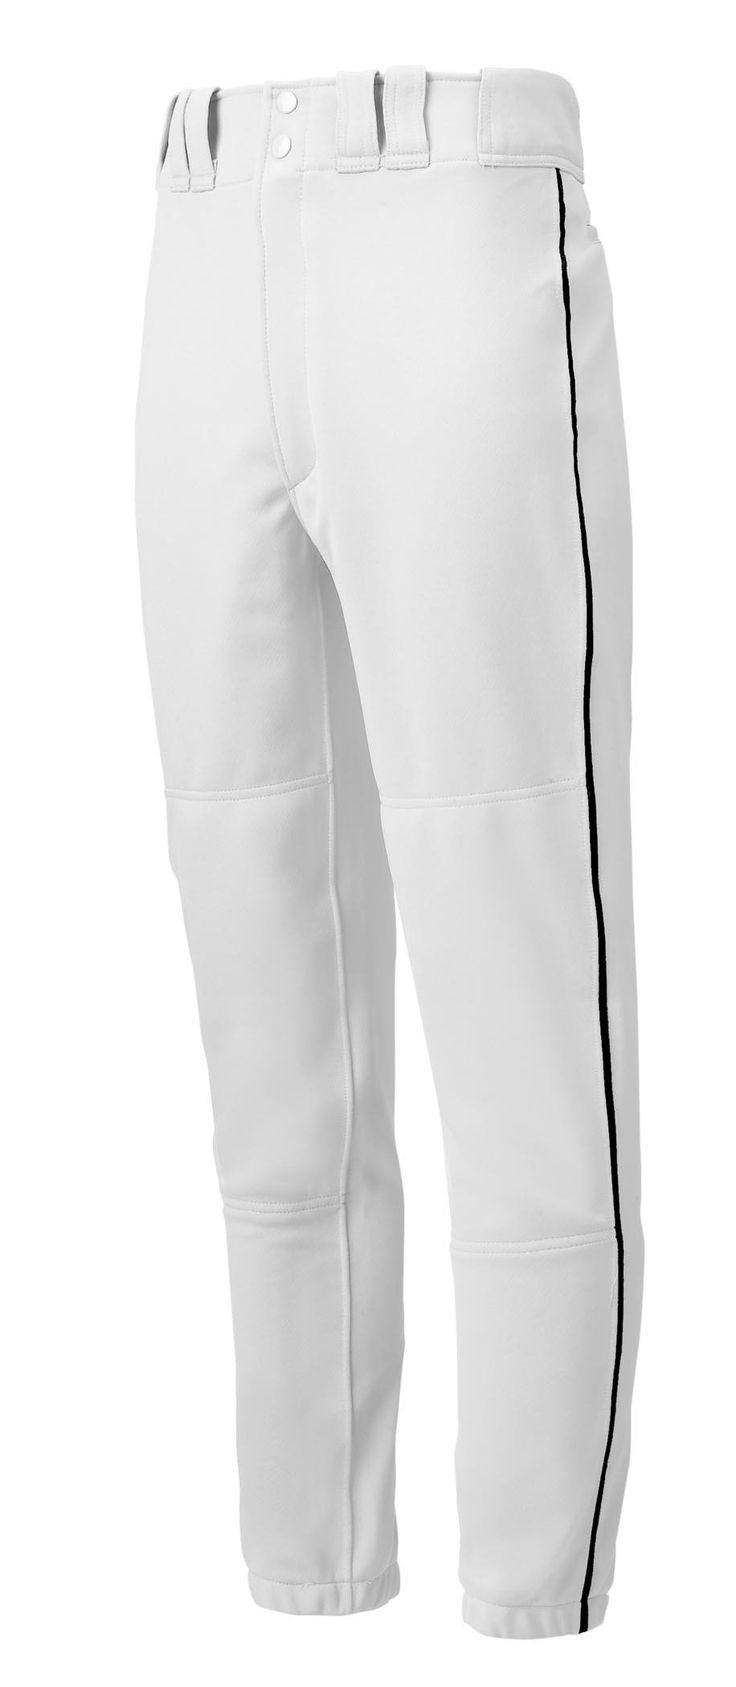 Mizuno Youth Premier Piped Pant (White/Black, XX-Large). 100 % Polyester Double Knit (15 oz). Designed specifically to fit a youth sized body. Tunnel belt loop waist with two set in back pockets with button closure. Double knee, performance plus padding. Elastic bottom. Size charts define measurements of the garment and not the body.